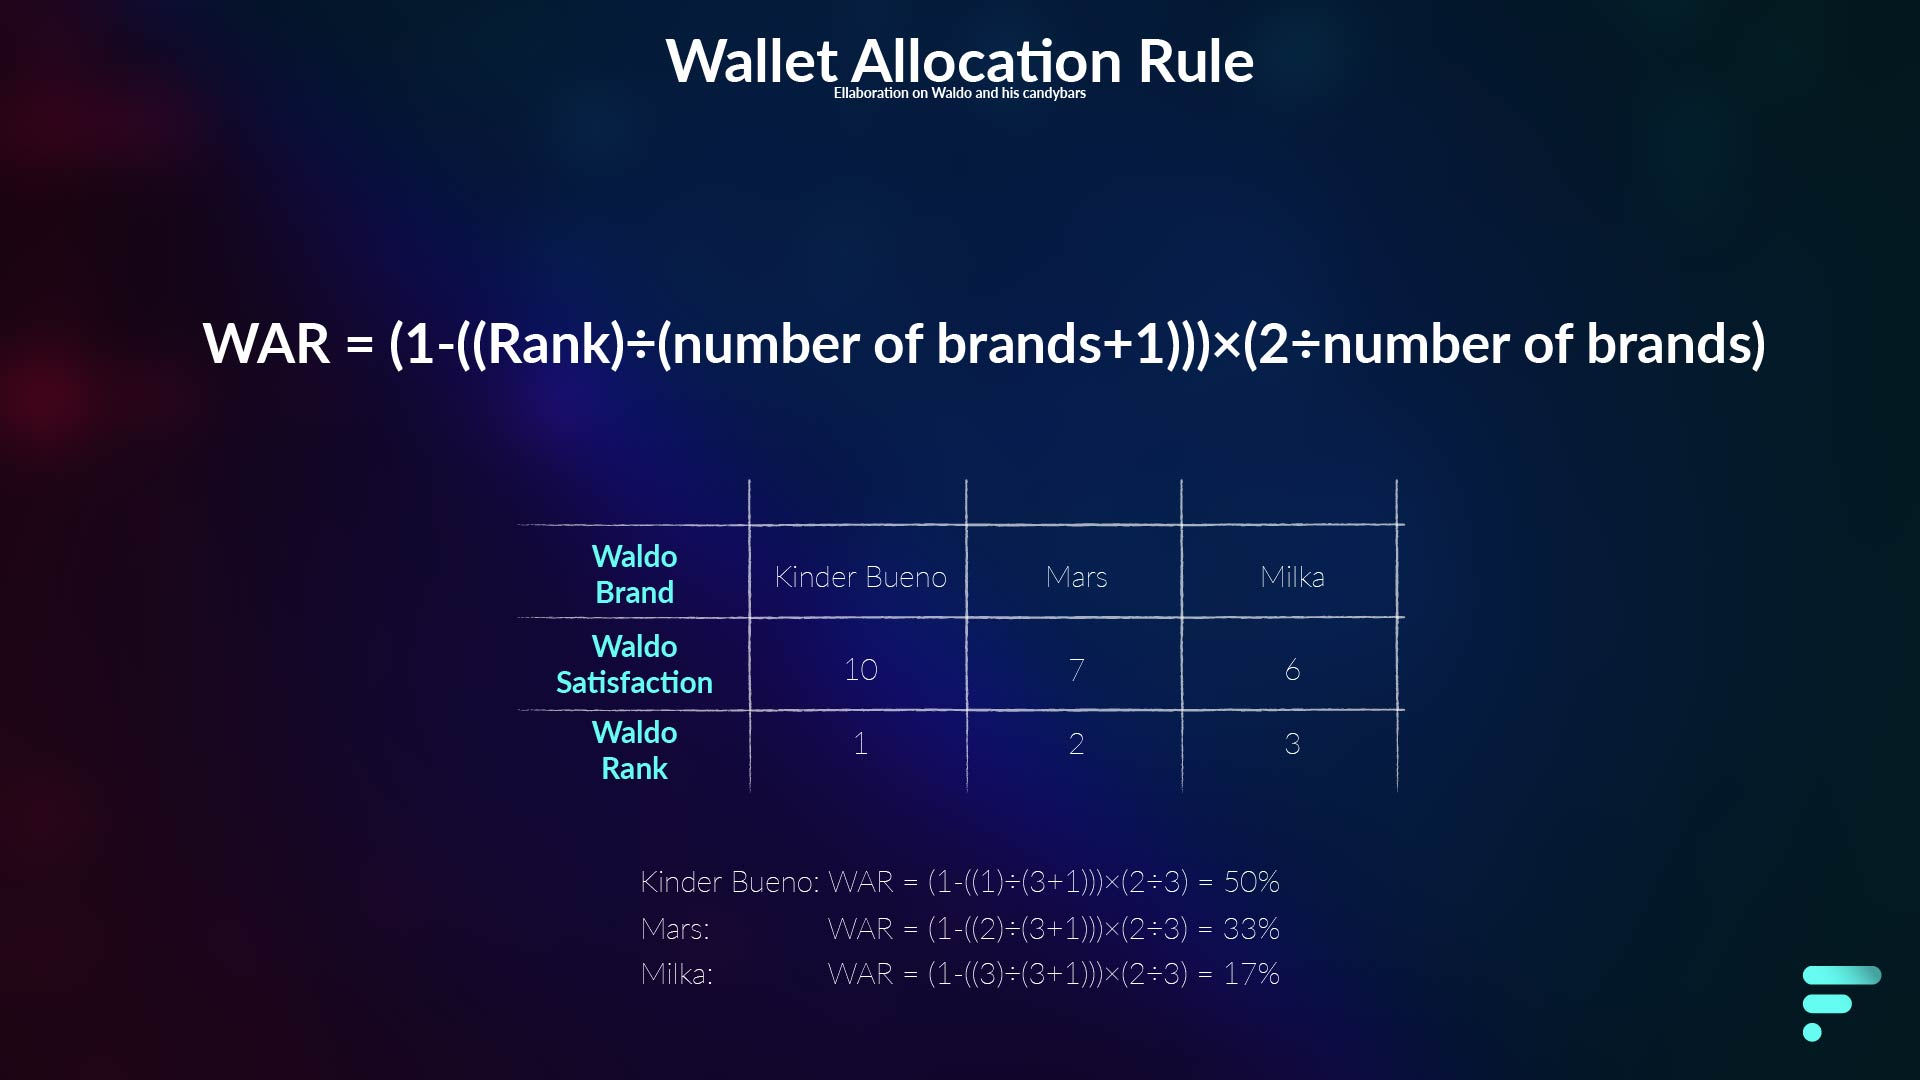 Wallet allocation rule equation and elaboration